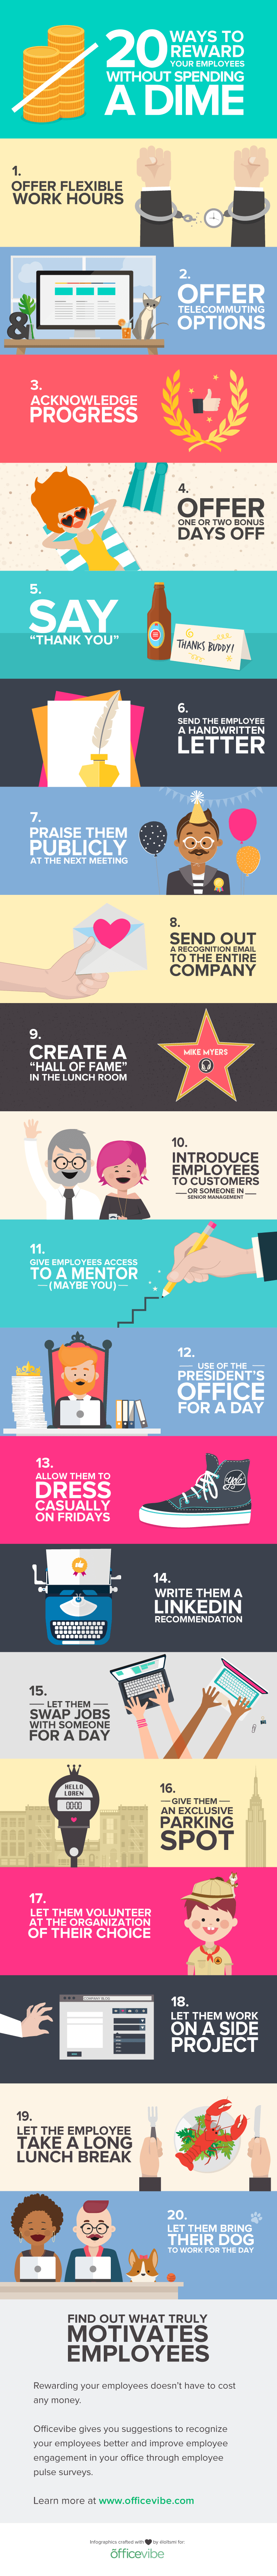 infographic-reward-employees.png